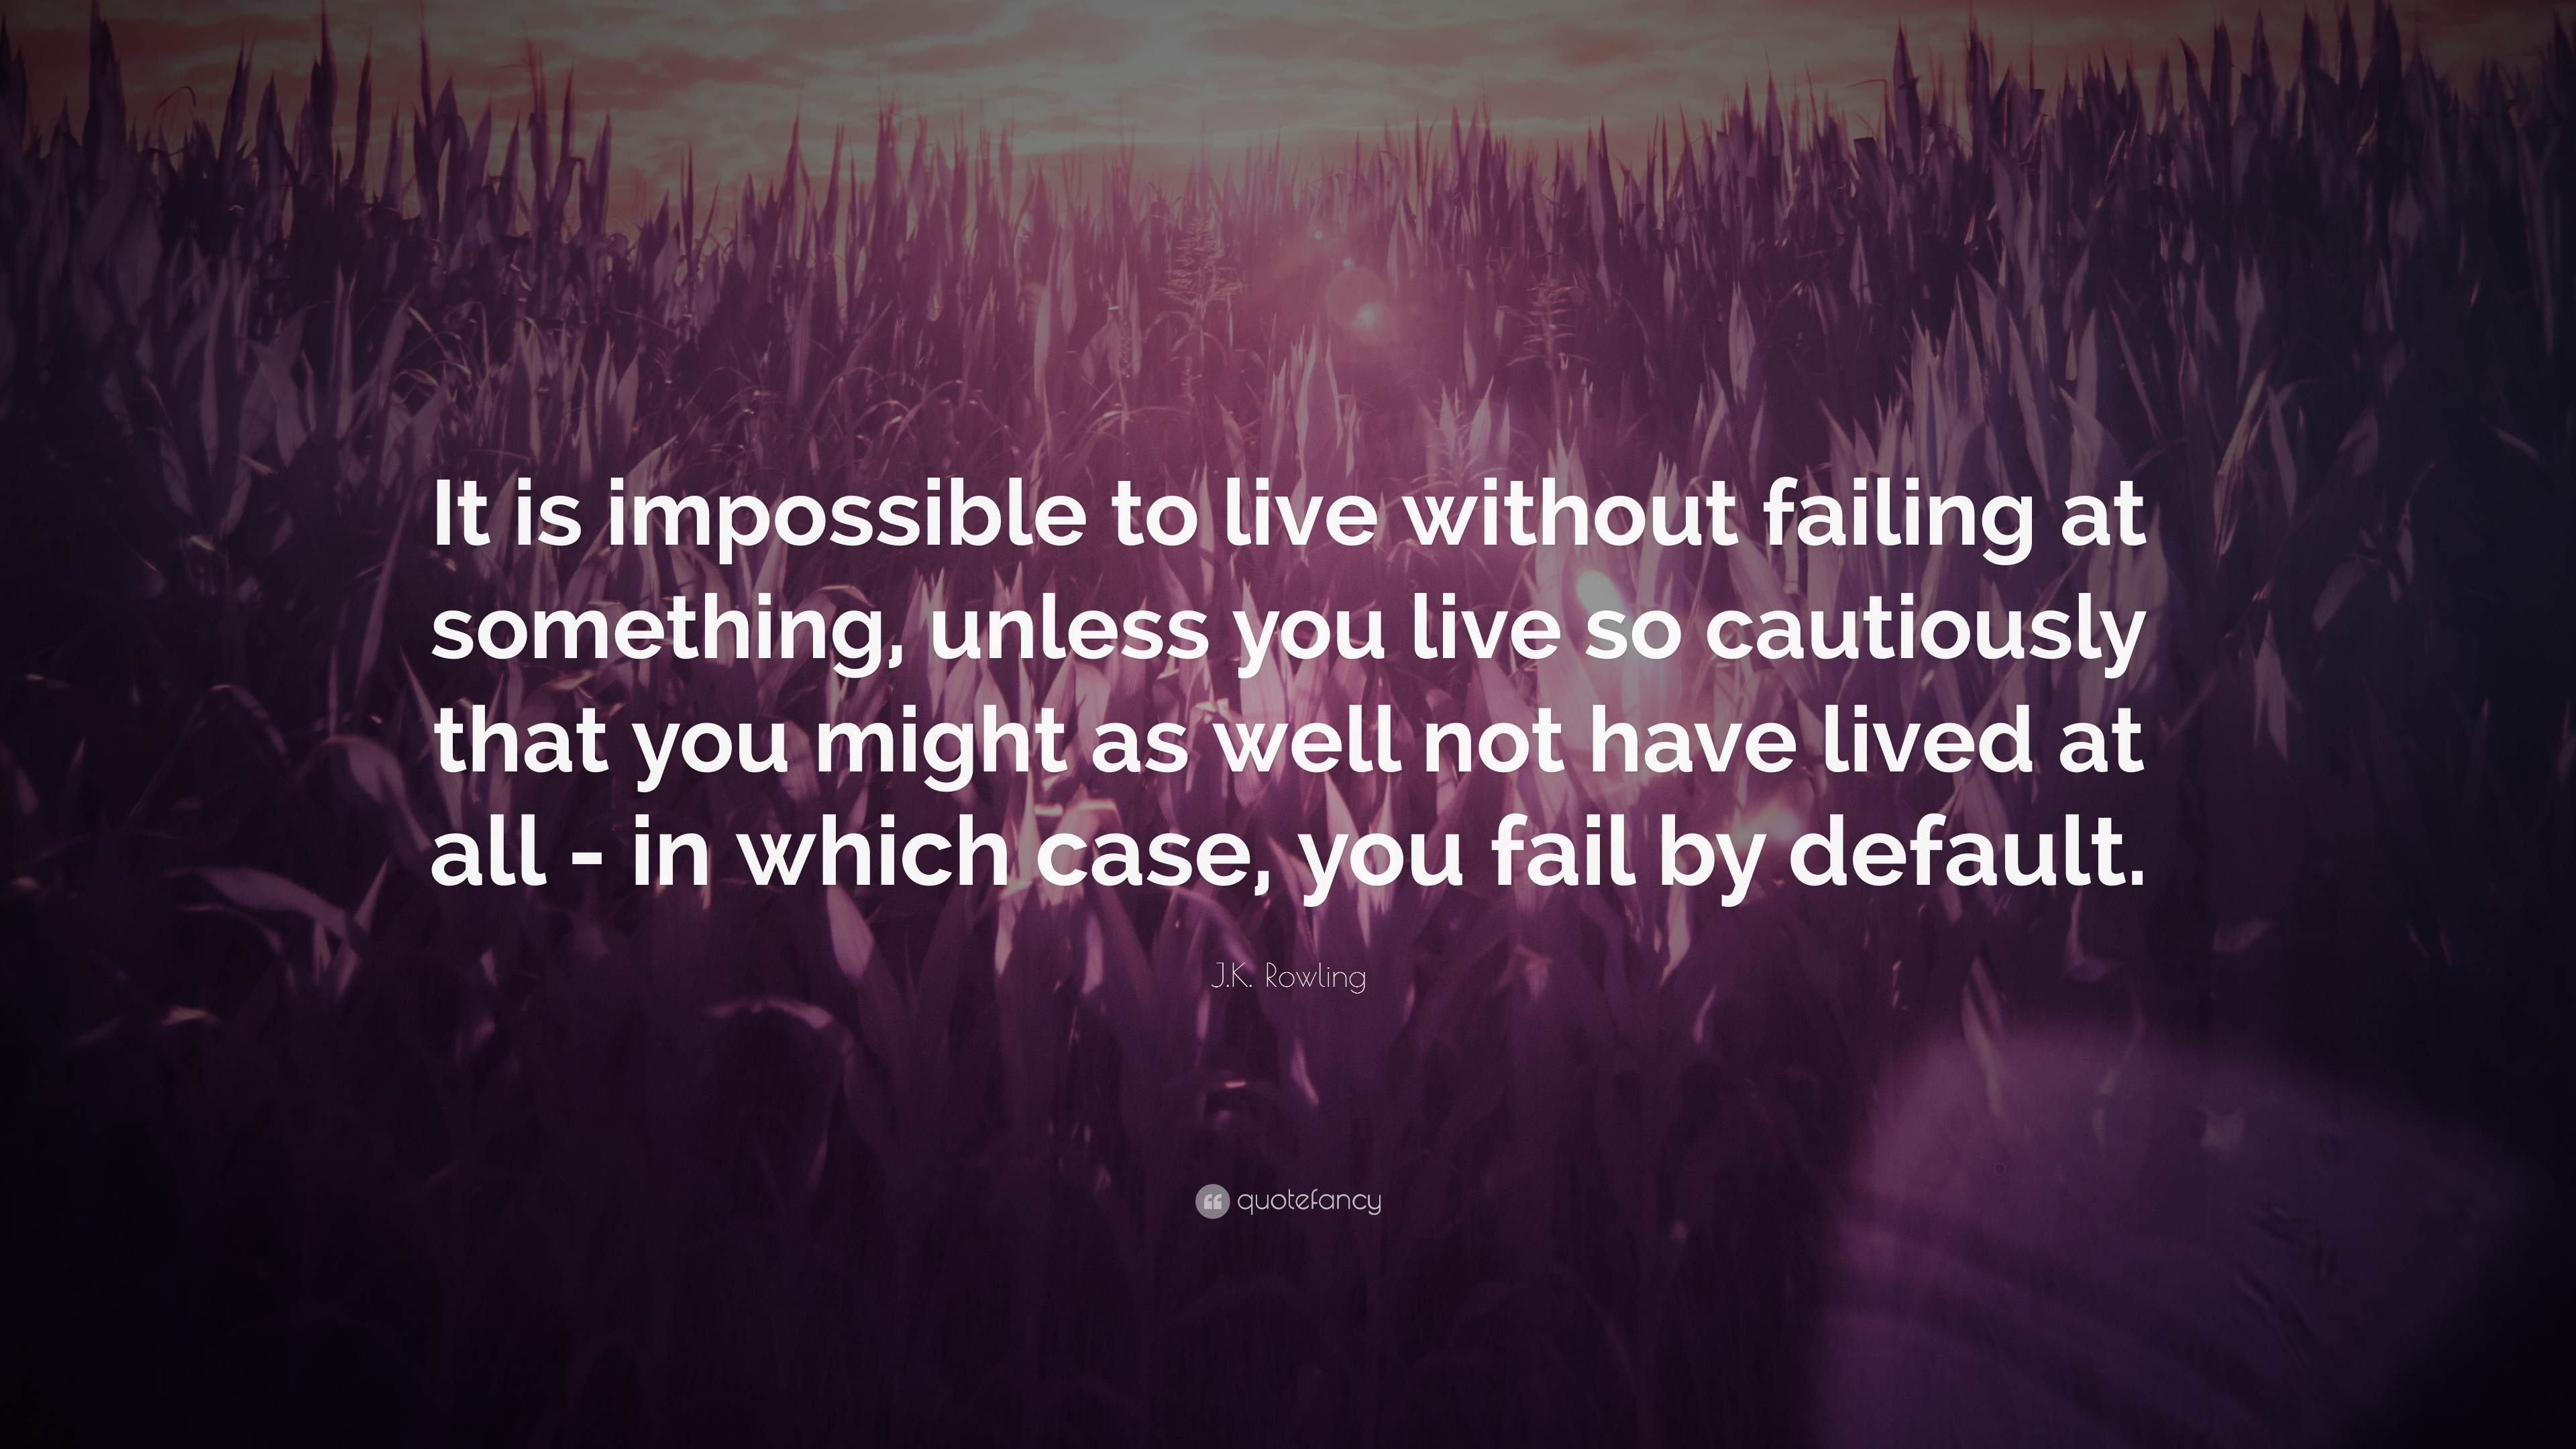 5926-J-K-Rowling-Quote-It-is-impossible-to-live-without-failing-at.jpg